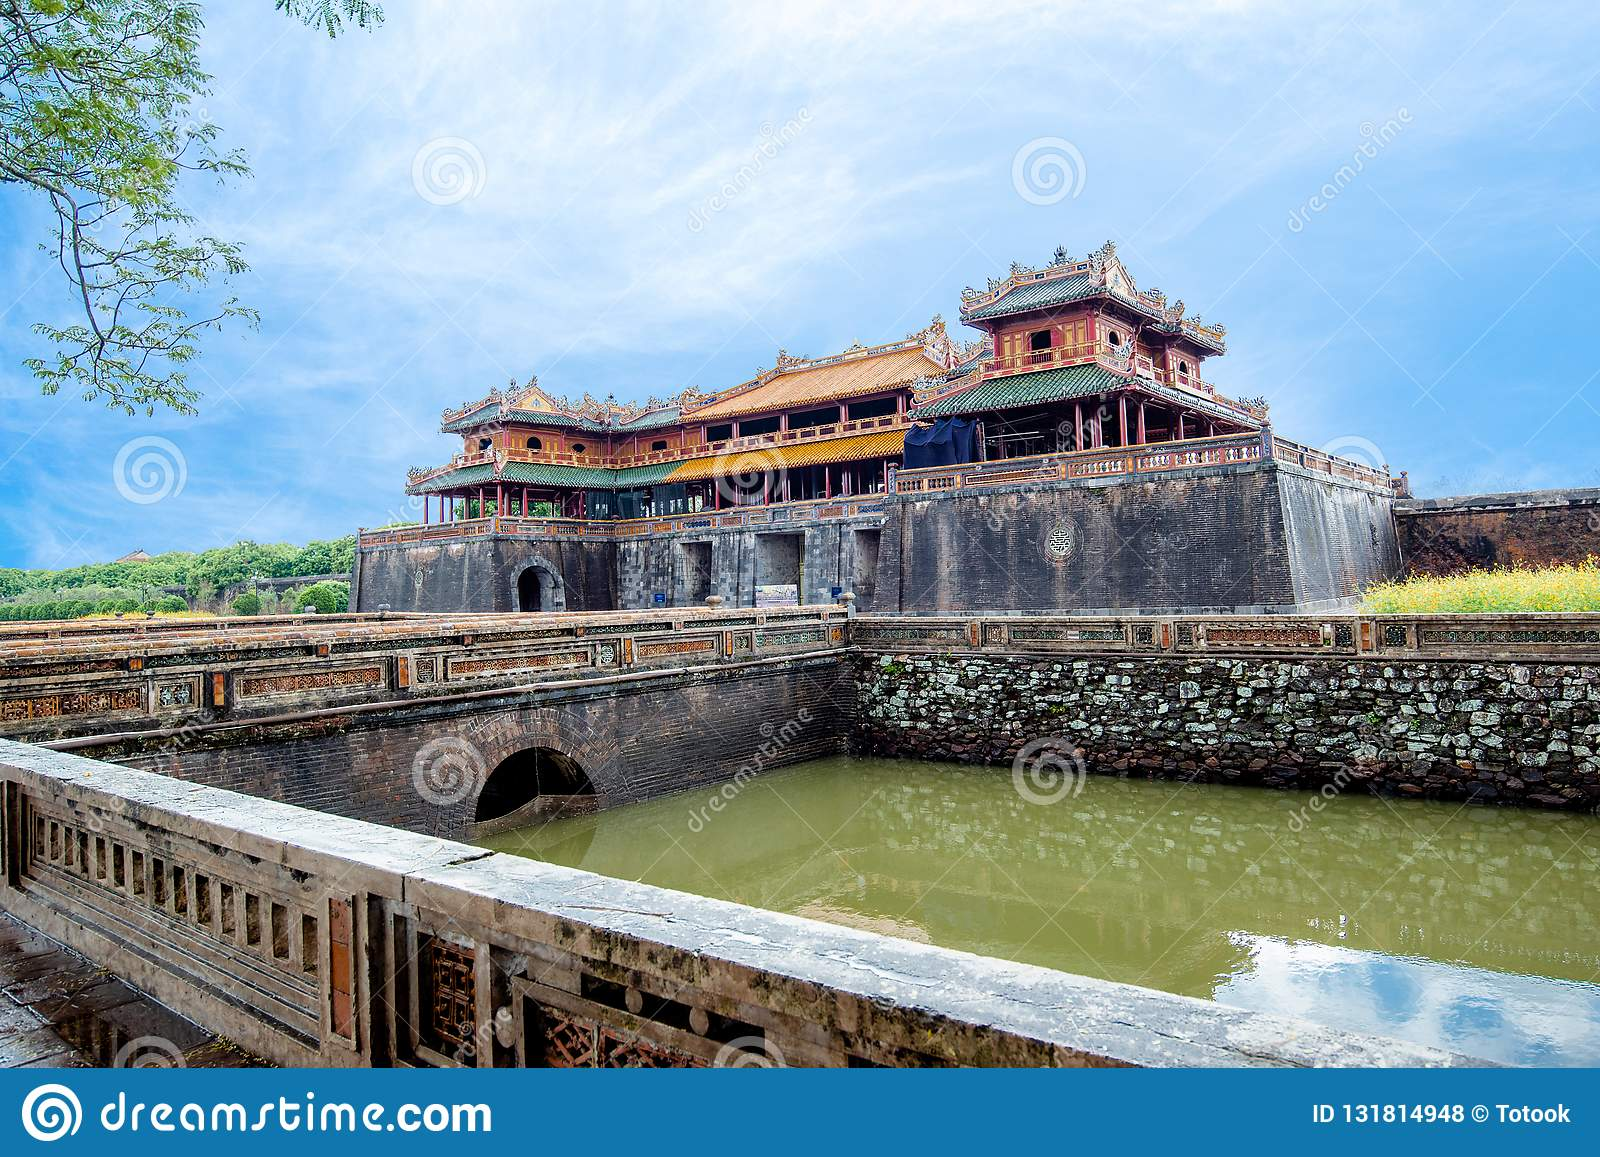 Complex of Hue Monuments in Hue, Vietnam.